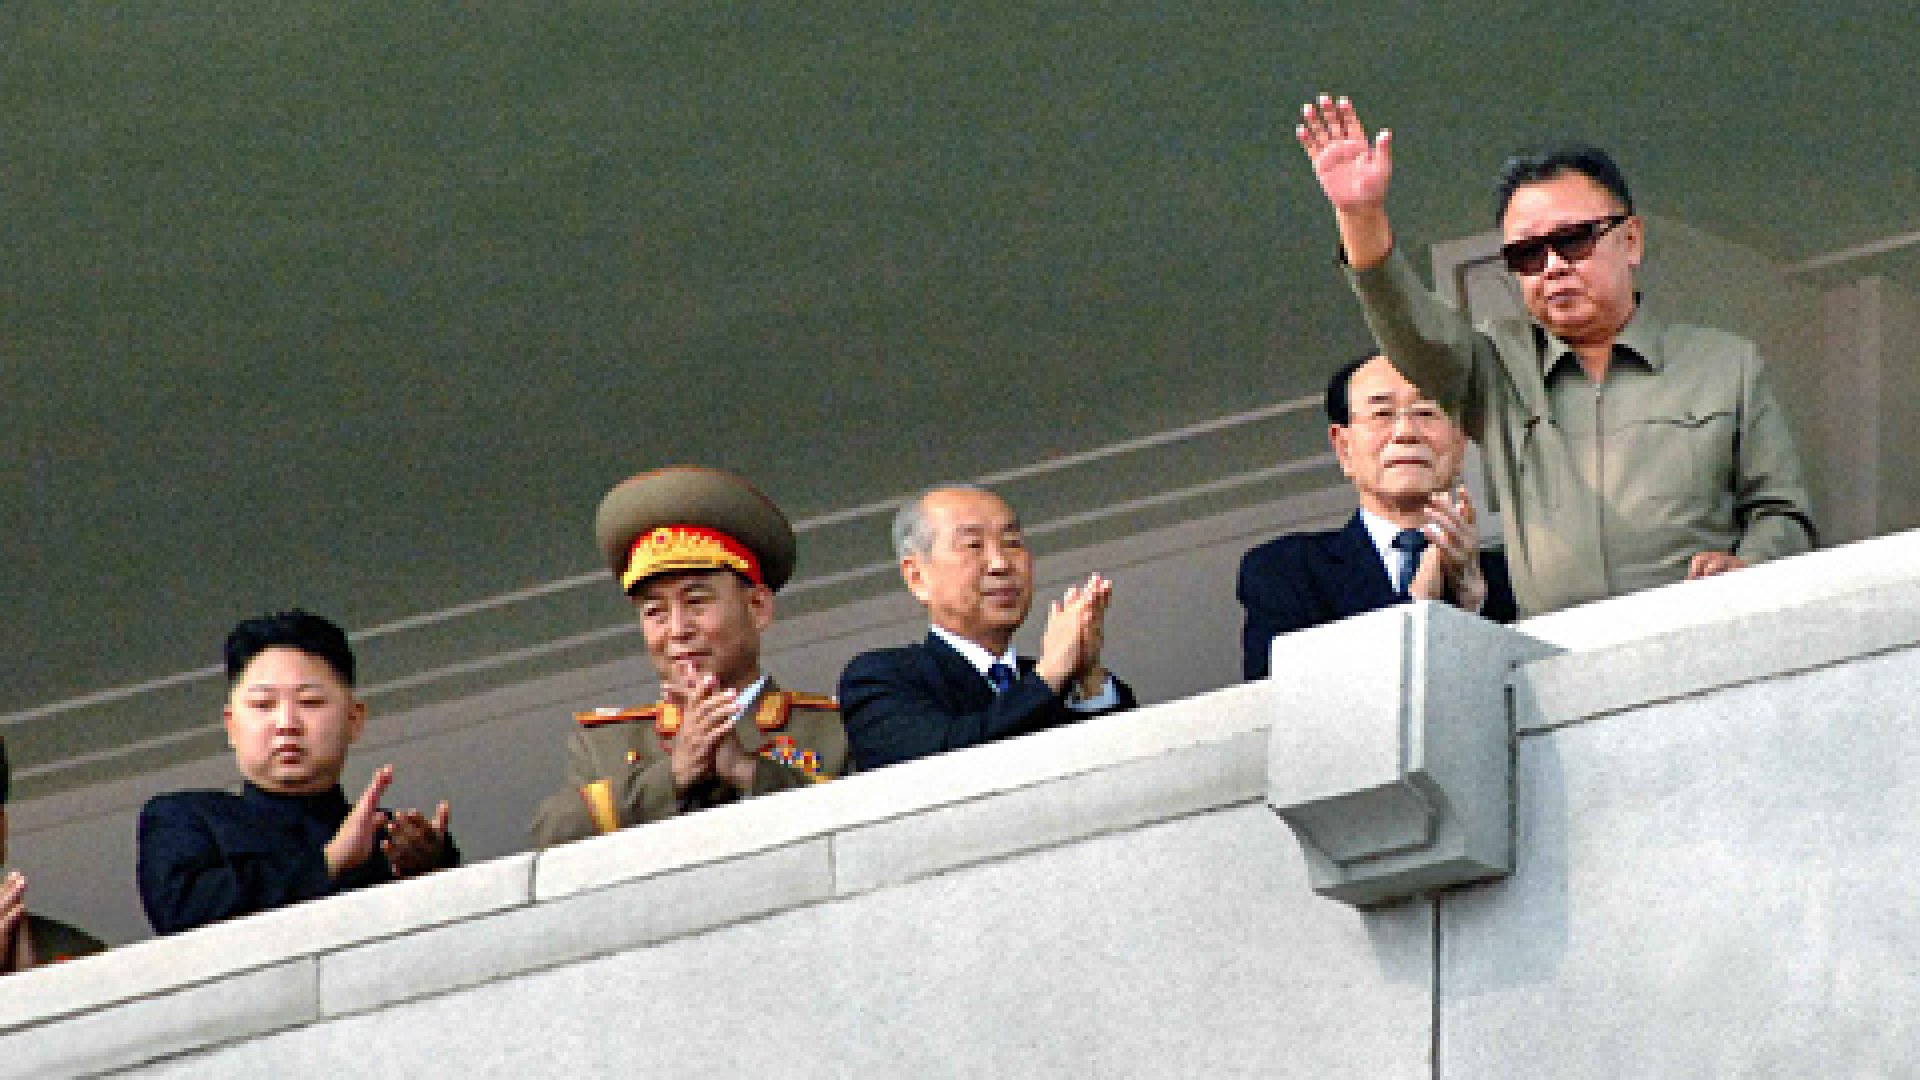 Photo provided by KCNA news agency shows the Democratic People's Republic of Korea (DPRK)'s top leader Kim Jong Il (1st R) arrive to watch a military parade in celebration of the 63rd anniversary of the DPRK, in Pyongyang.